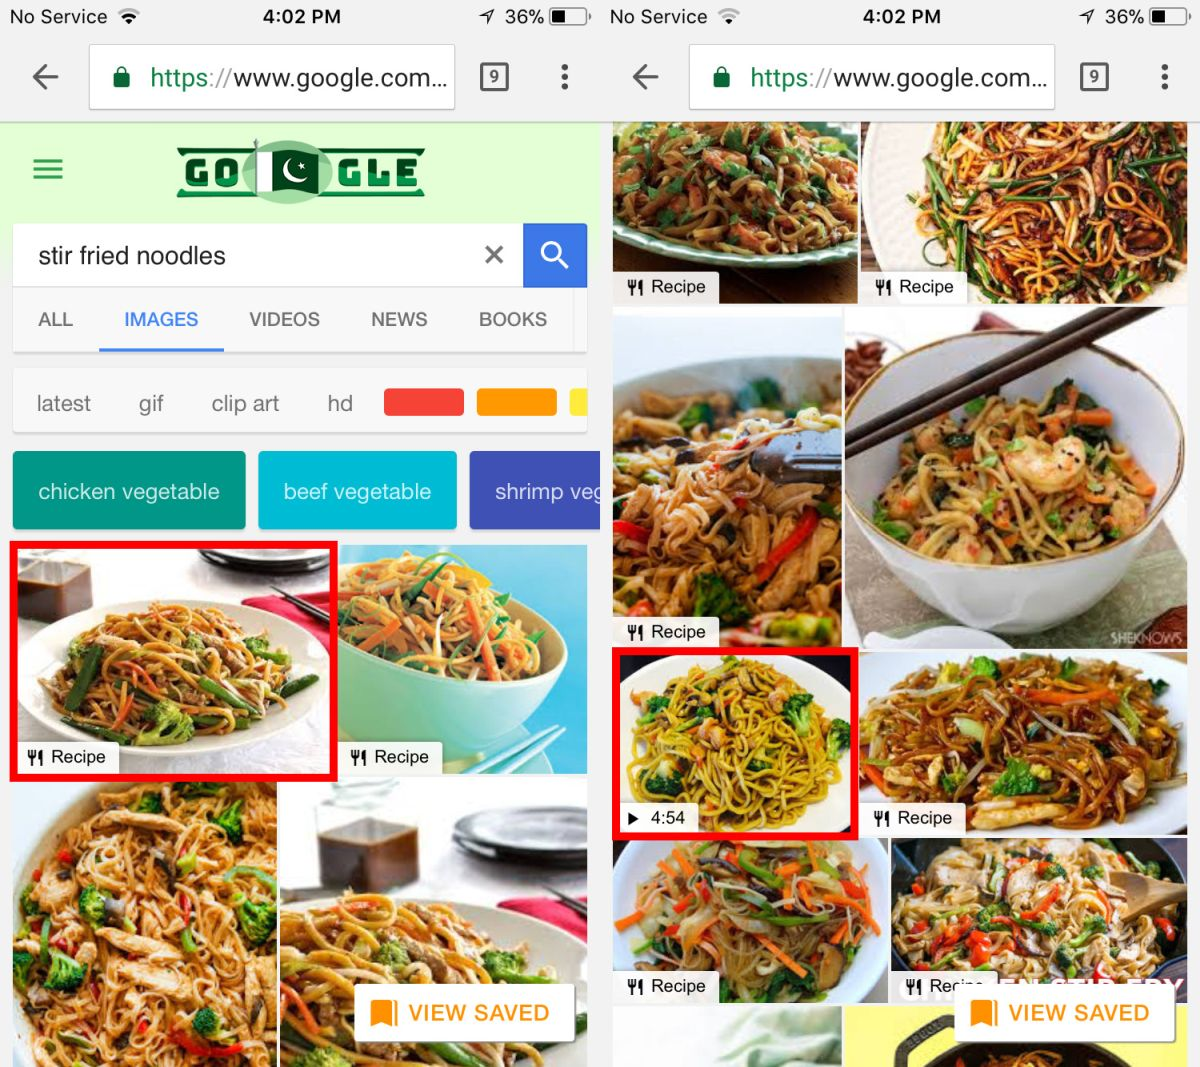 How To Find Recipes In Google Image Search